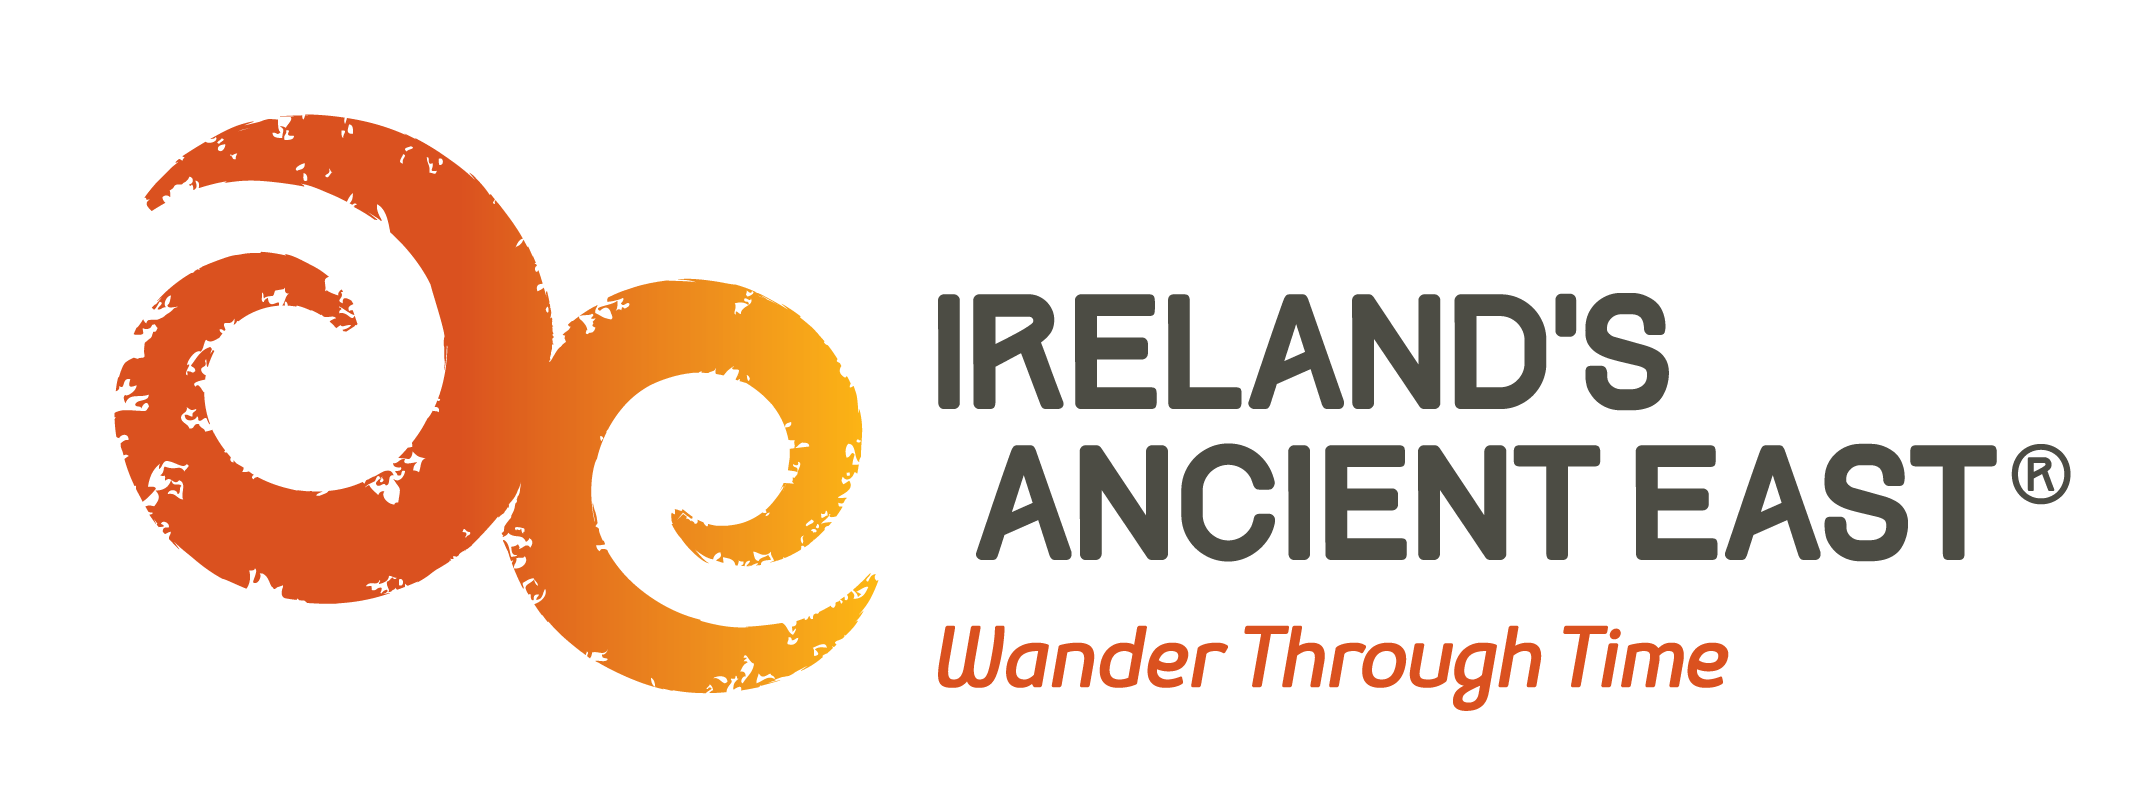 #IrelandsAncientEast